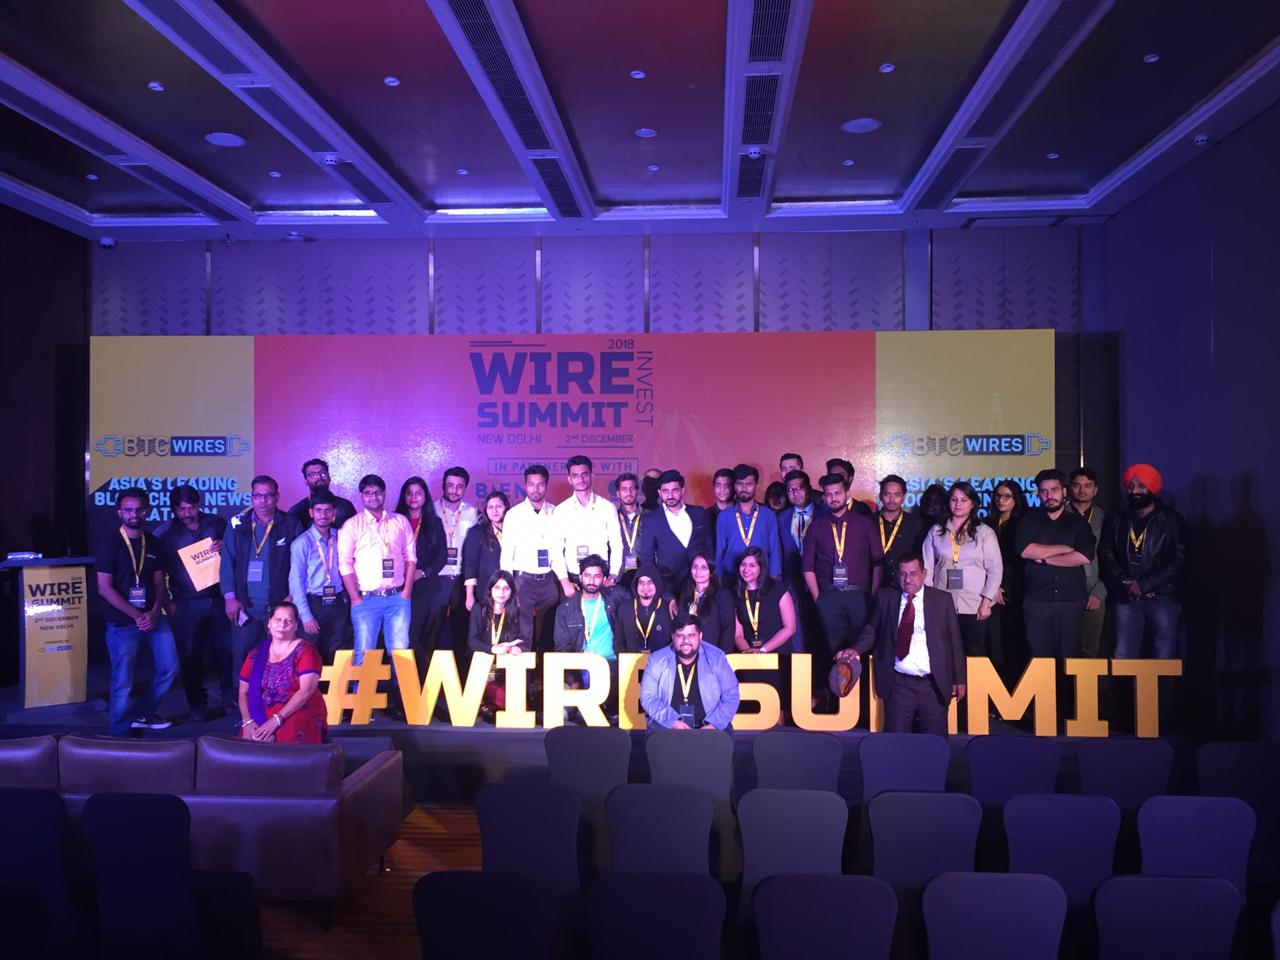 wiresummit